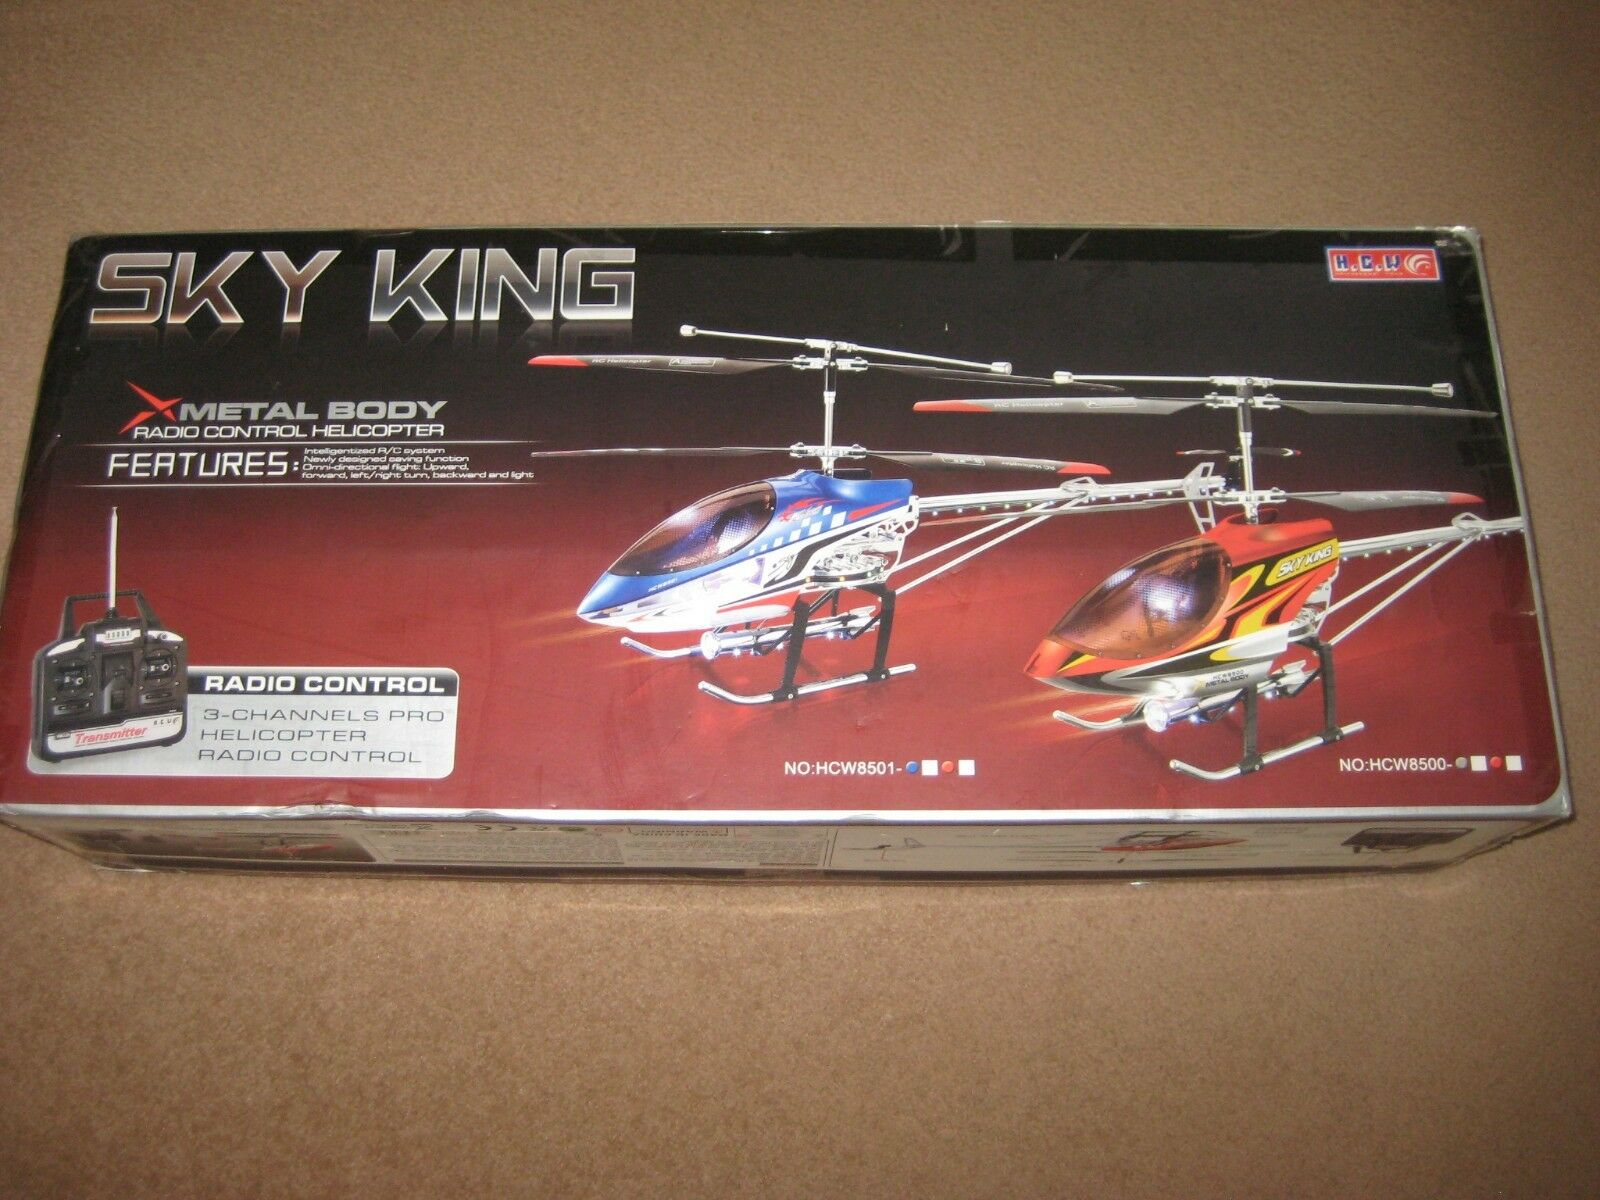 RC SKY KING HCW 8500 8501 PARTS TRANSMITTER 27.145Mhz 27.145Mhz 27.145Mhz SPARE PARTS 0b7701